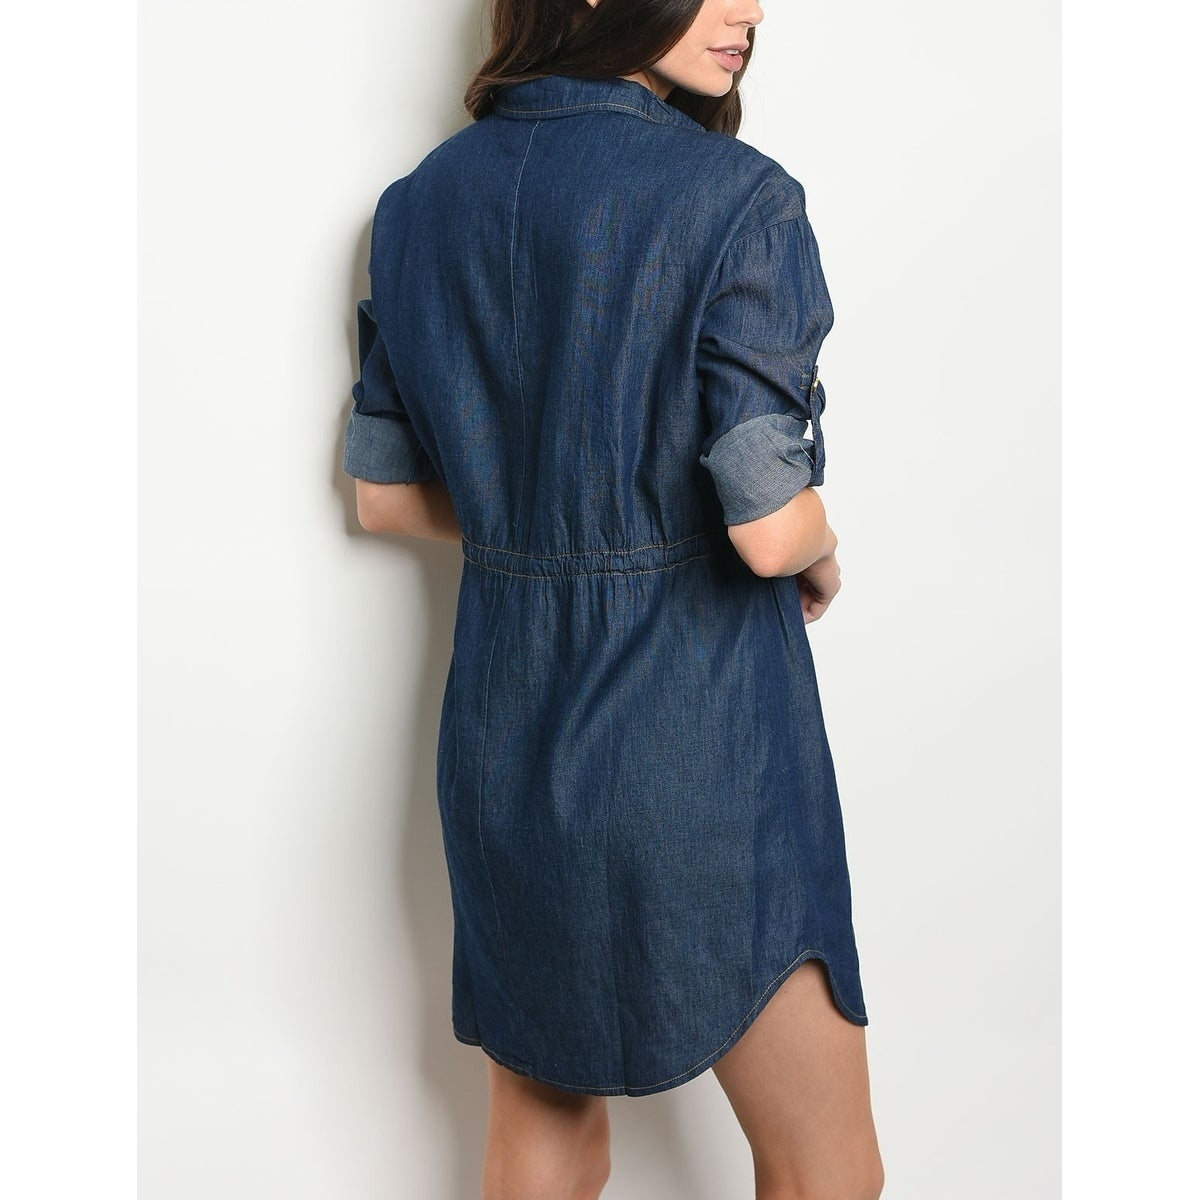 4d6bfbbc Shop JED Women's Button Down Denim Tunic Shirt Dress - Free Shipping On  Orders Over $45 - Overstock - 20731642